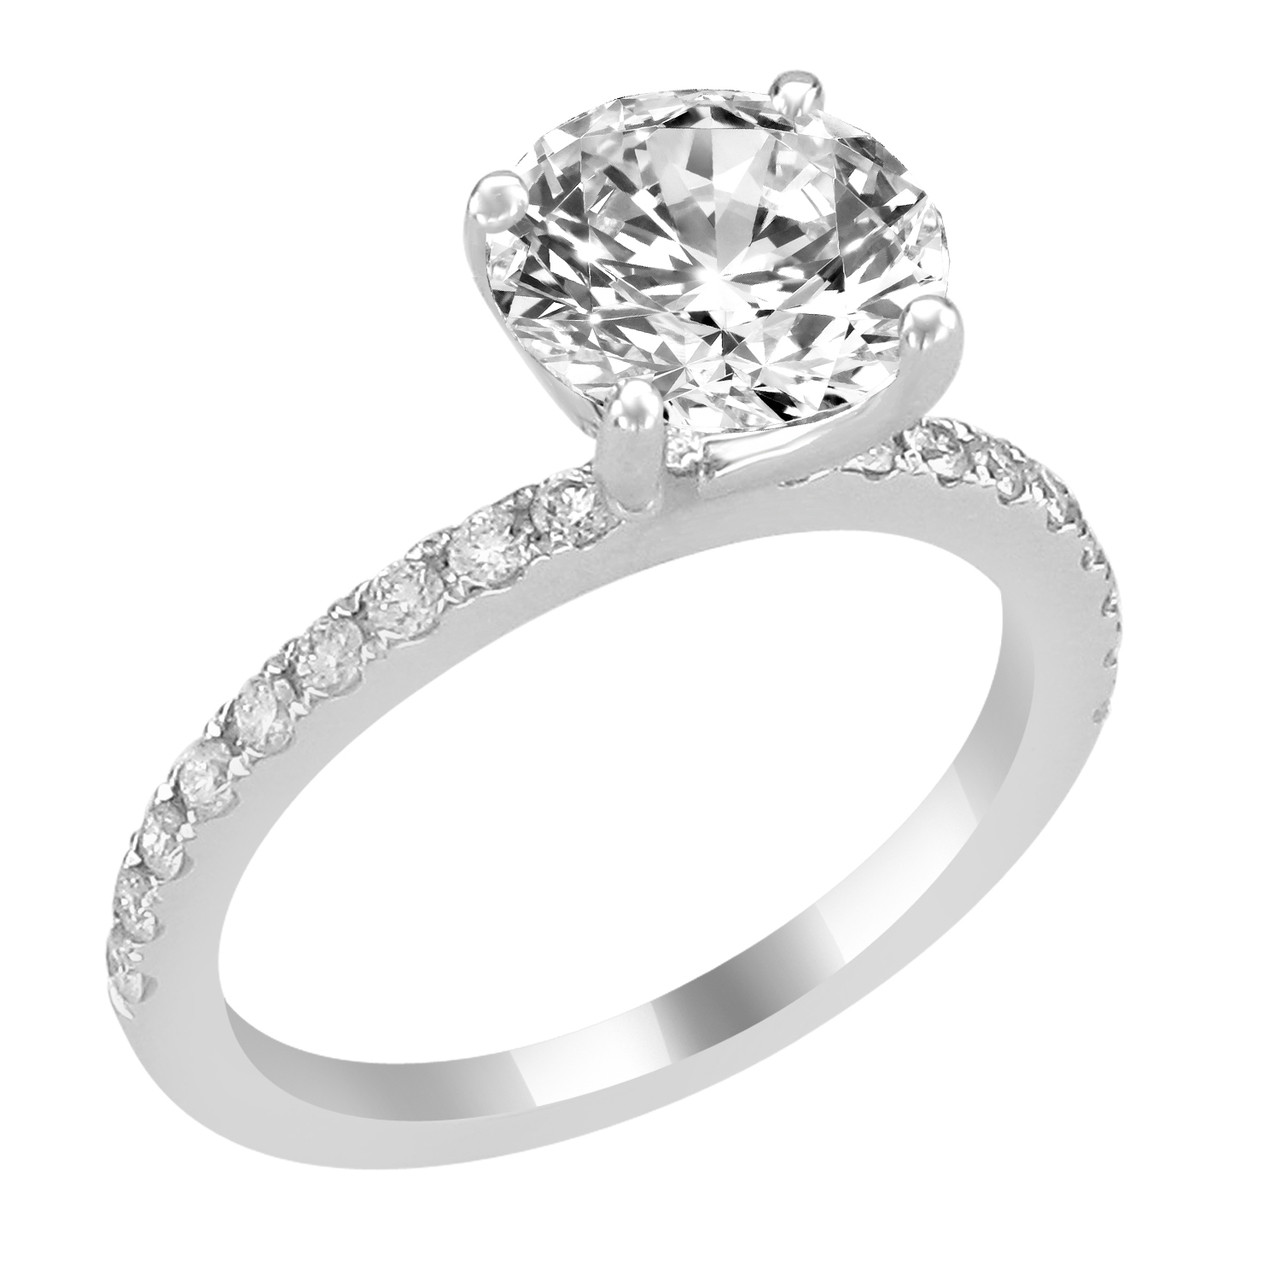 14K White Gold Engagement Ring with Bead Set Diamond Side Accent